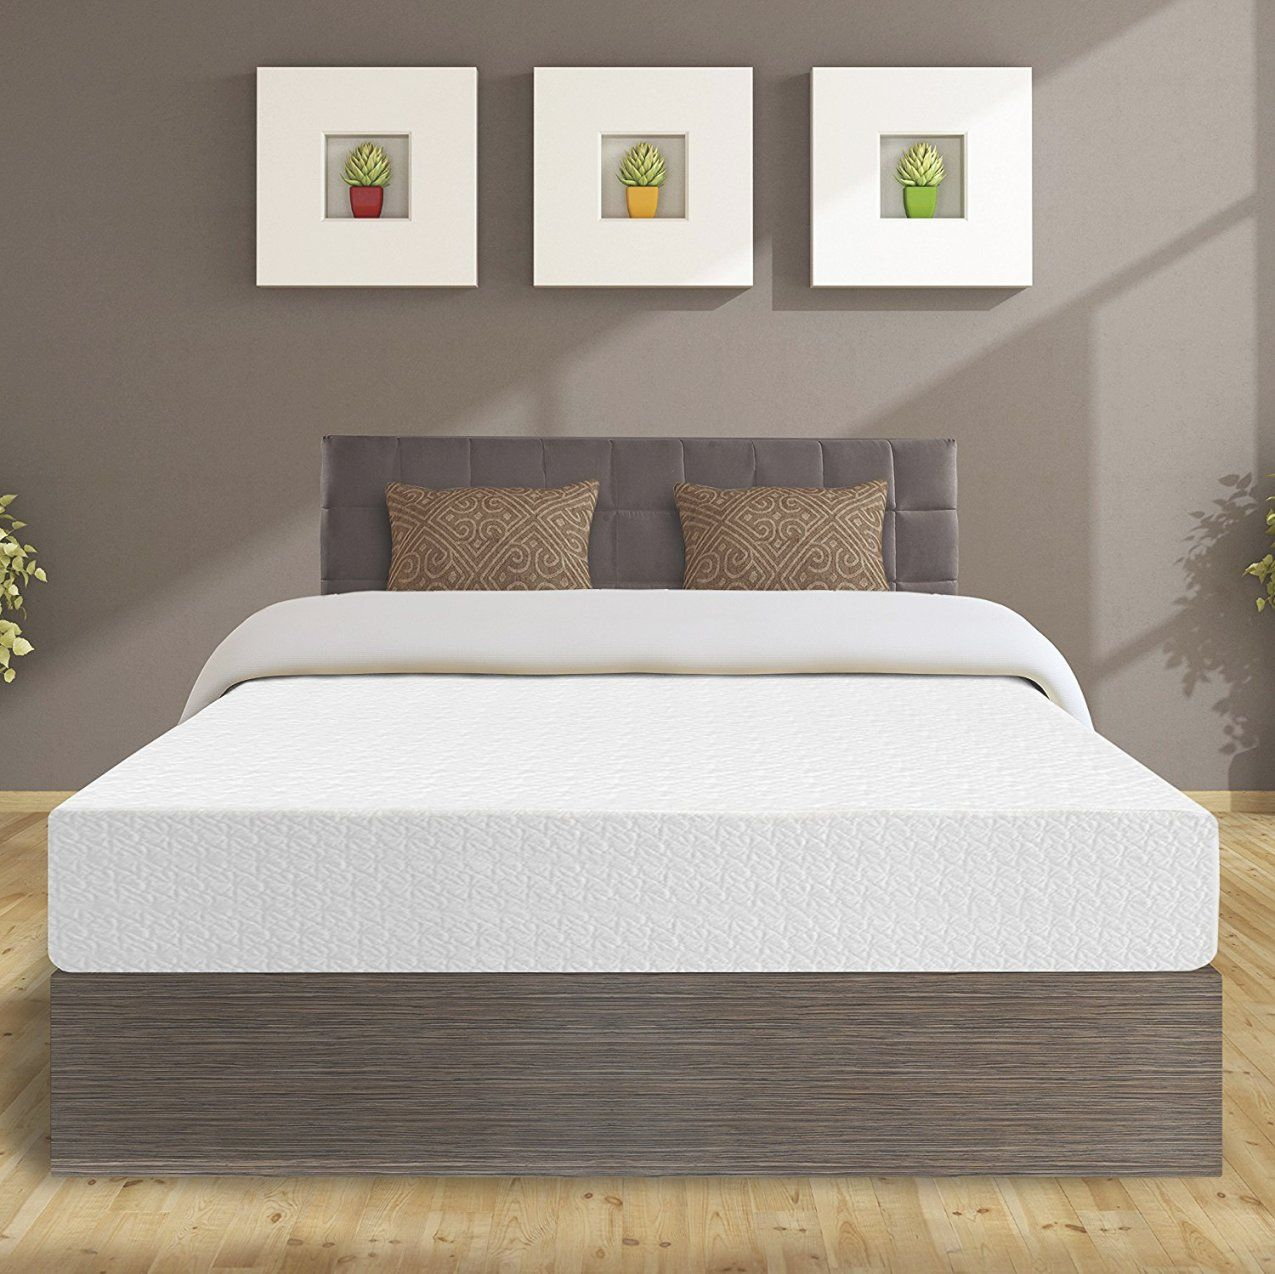 10 Memory Foam Mattress Queen Best Mattress Kitchen Ideas Foam Mattress Queen Memory Foam Mattress Platform Bed Sets